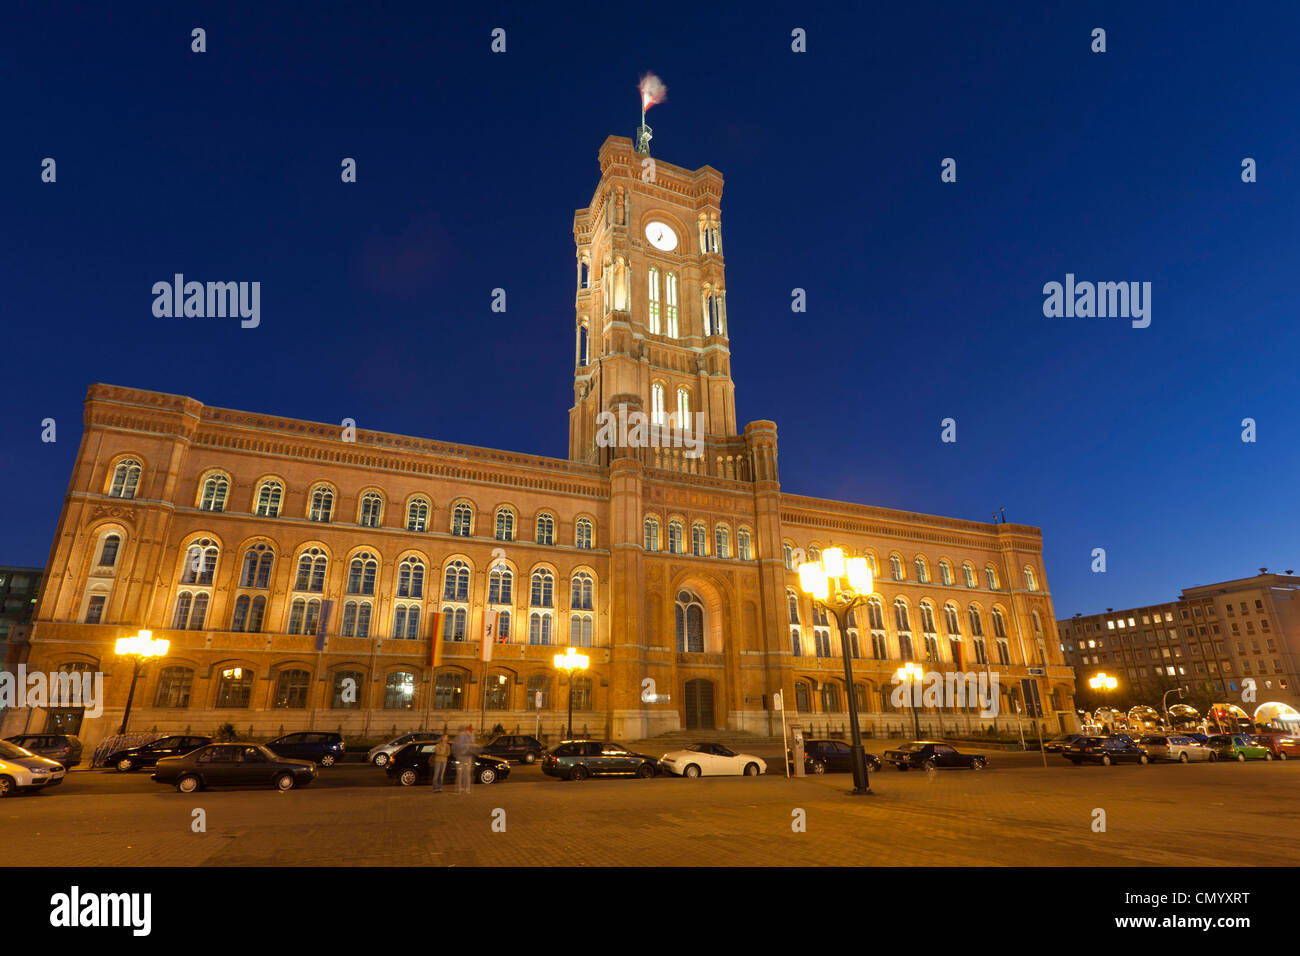 Rotes Rathaus, Rathausstrasse, Red town hall, Berlin Mitte, Berlin. Germany - Stock Image